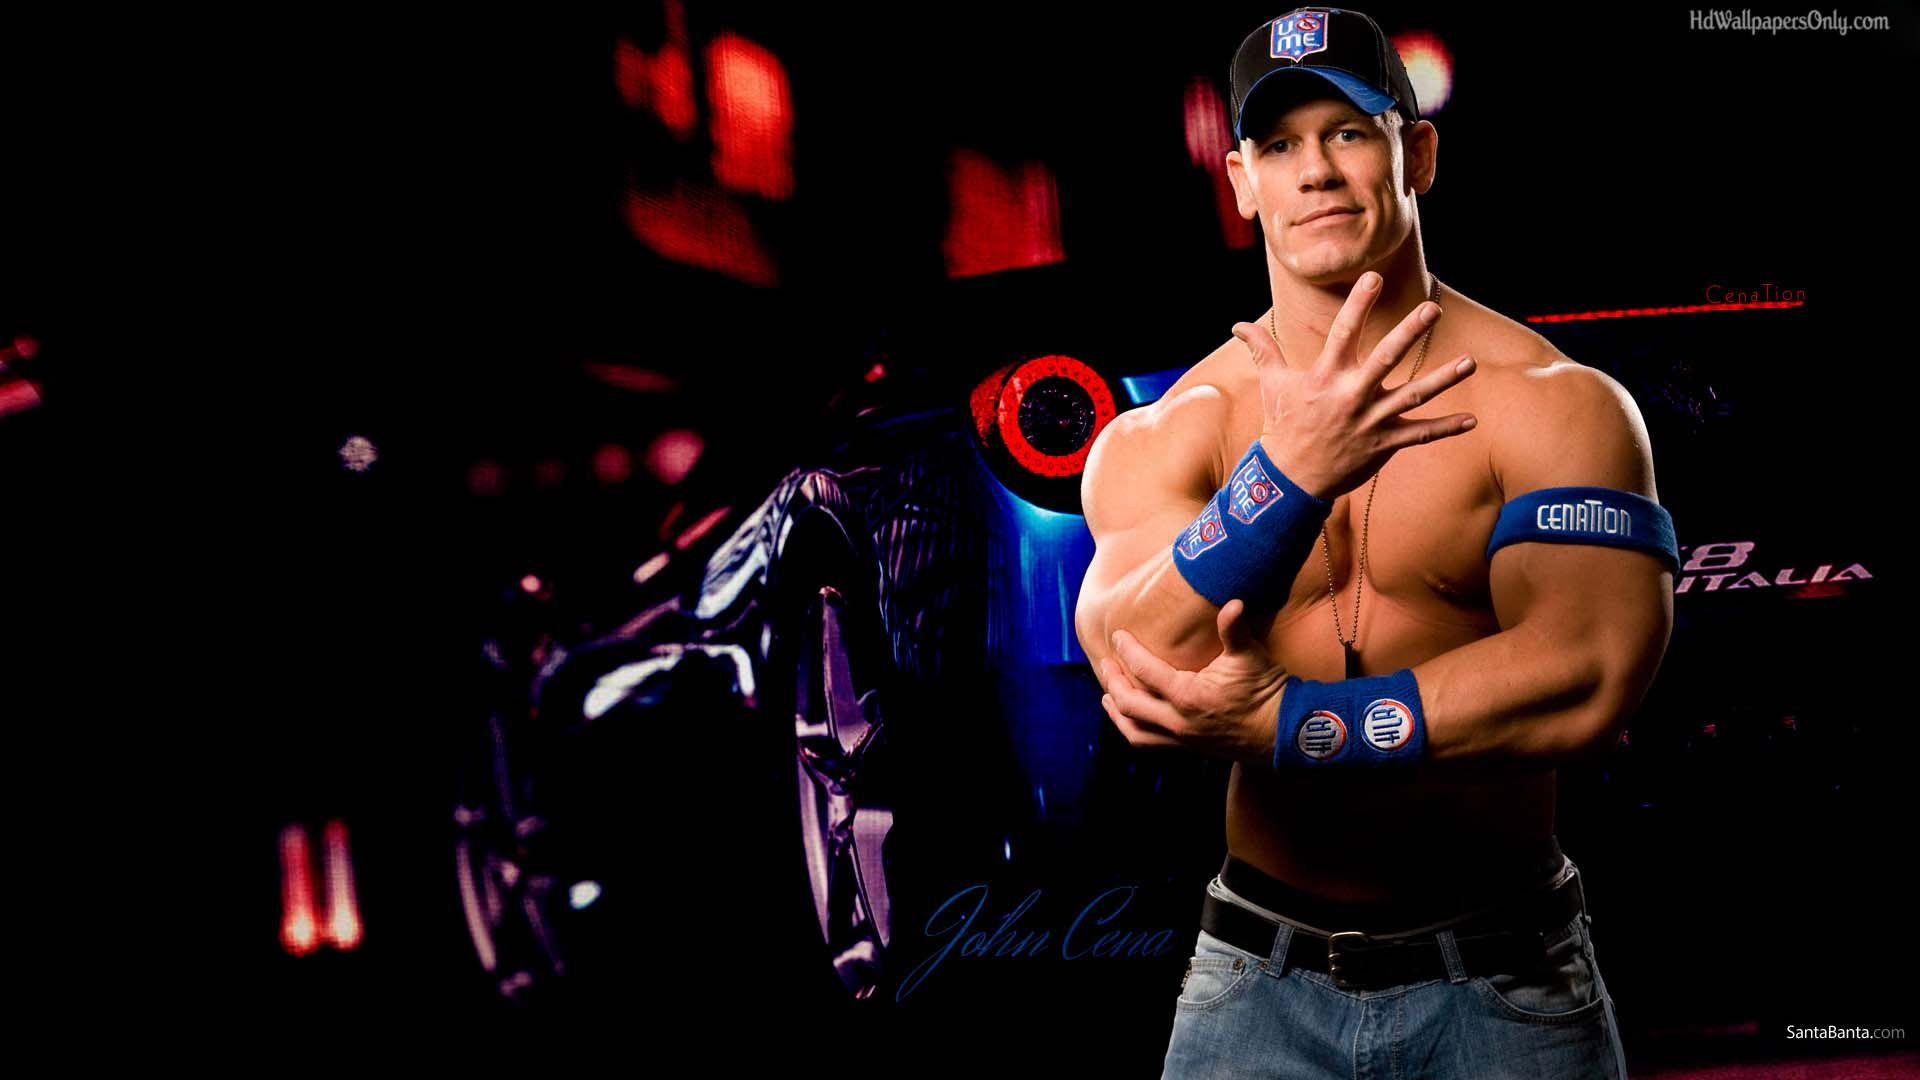 john cena wallpapers must downloads | hd wallpapers | pinterest